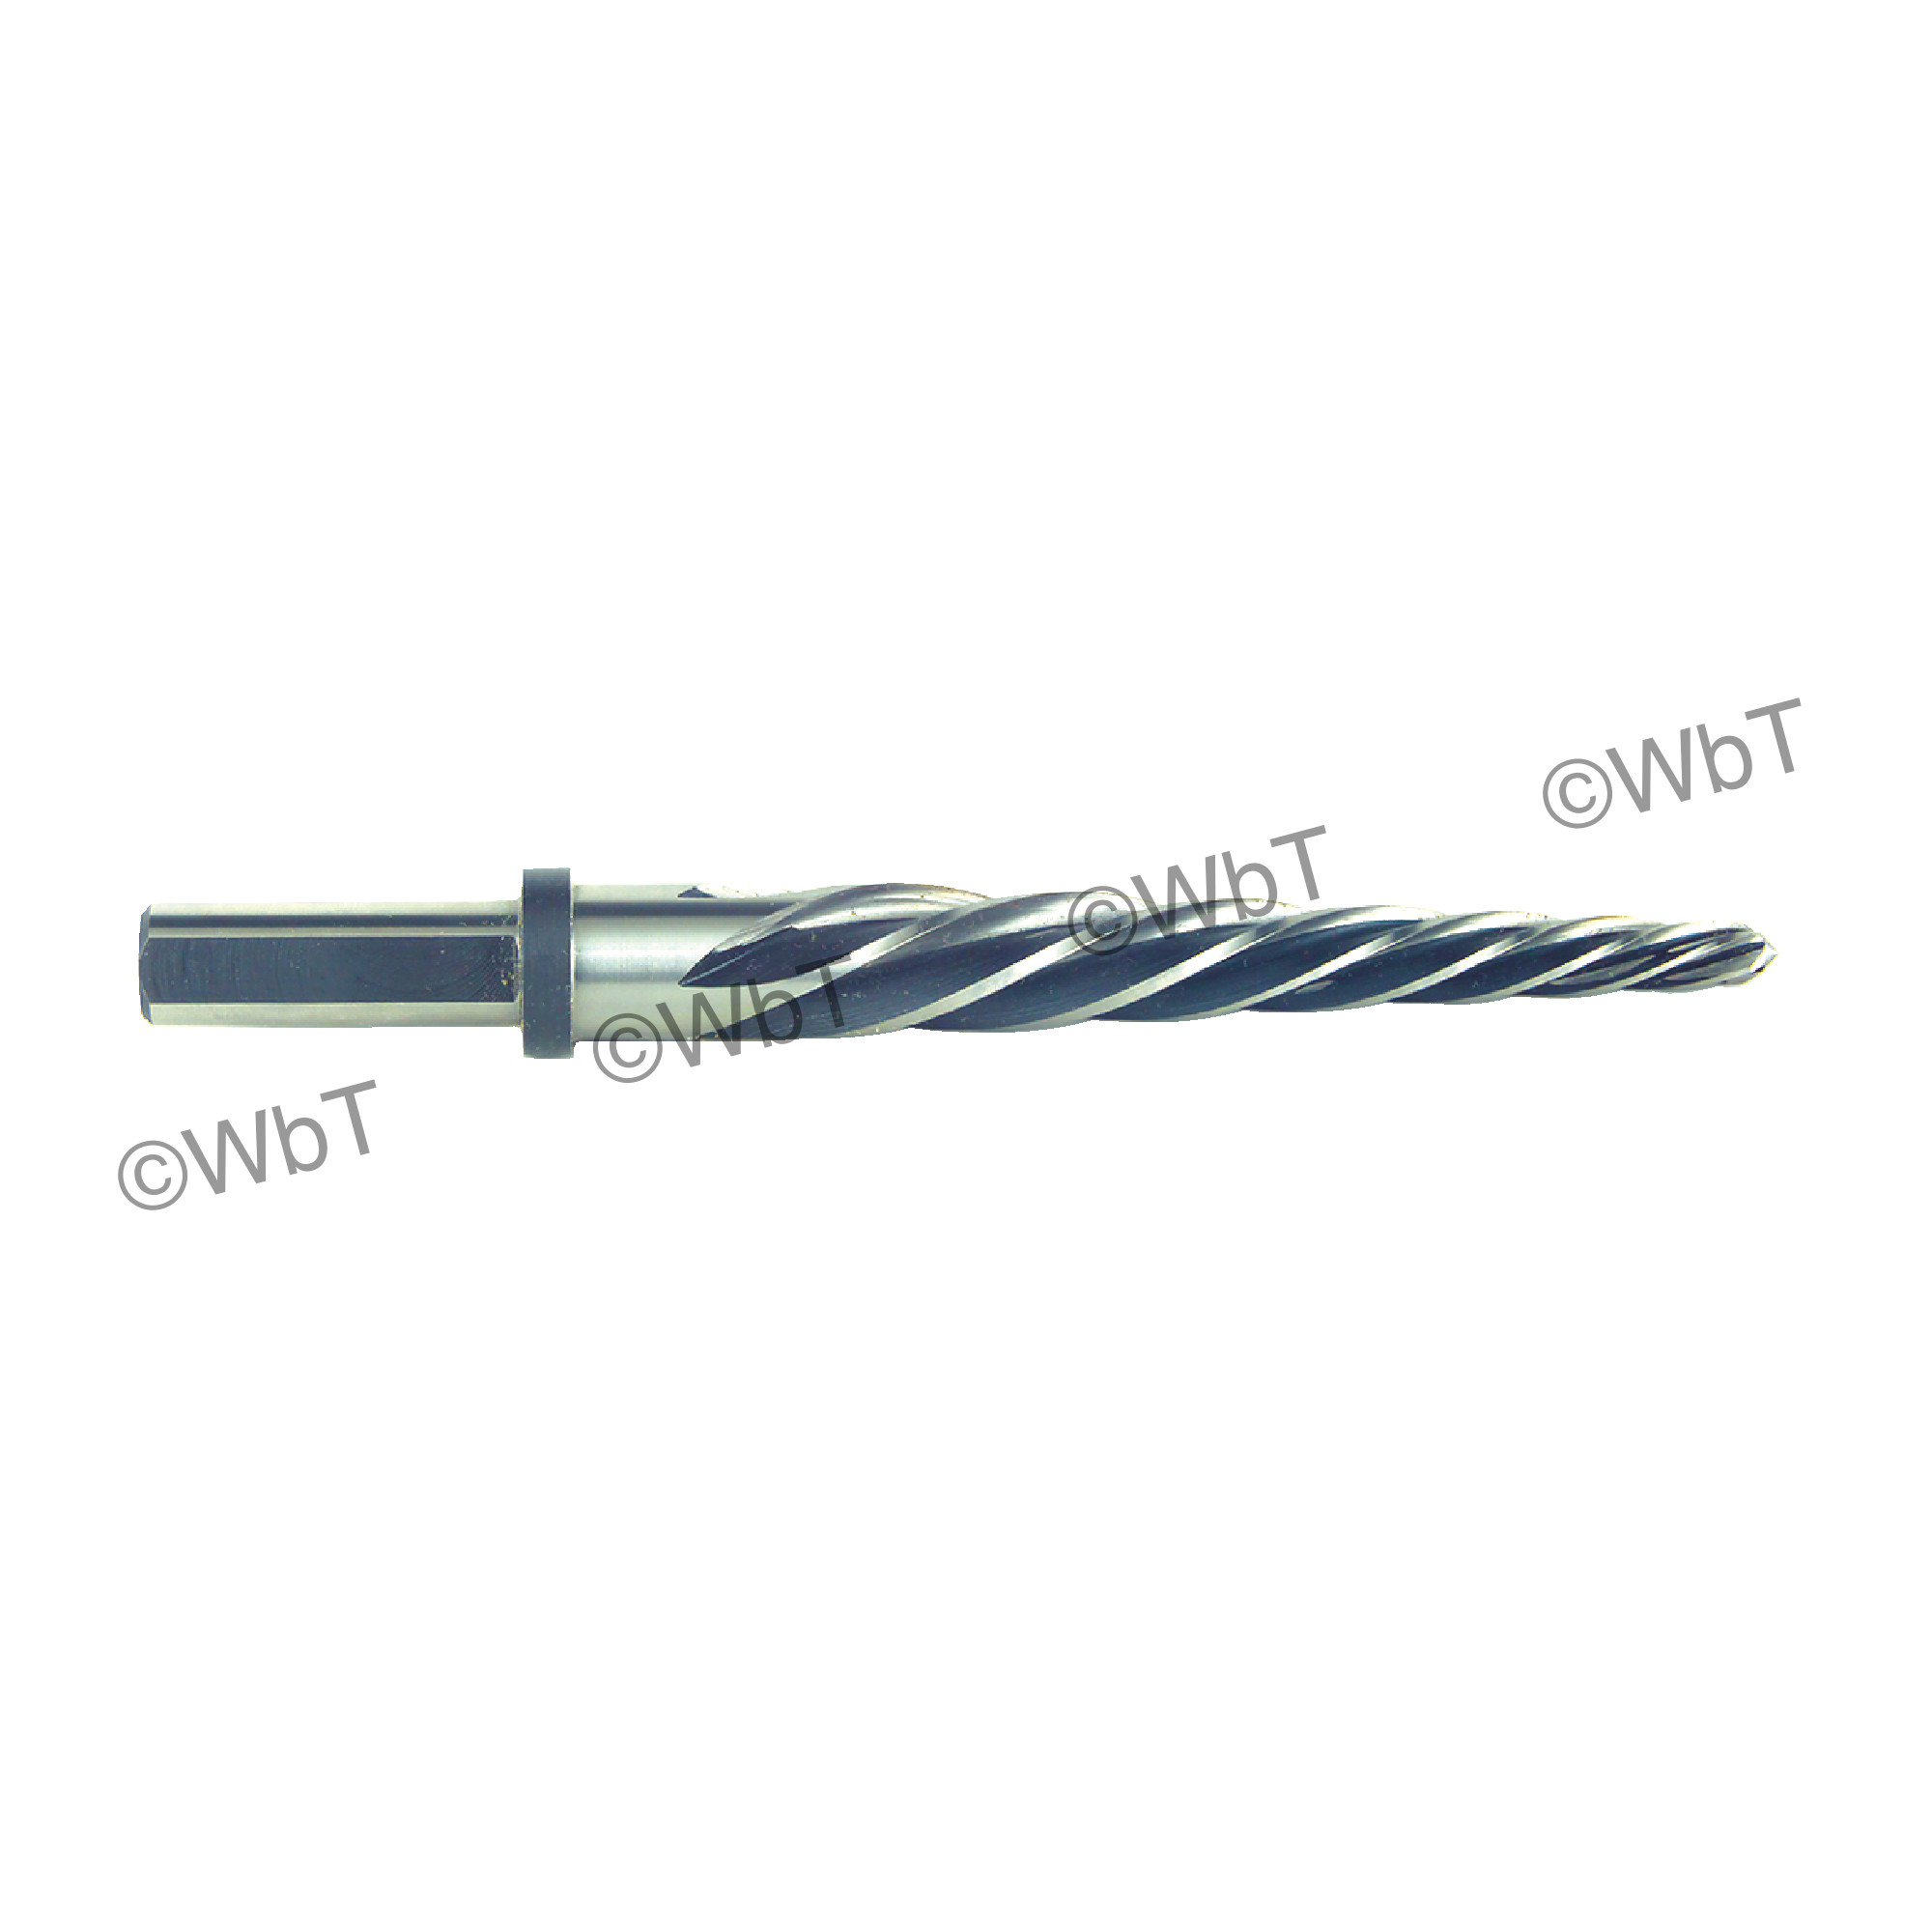 High Speed Steel Construction Taper Reamers